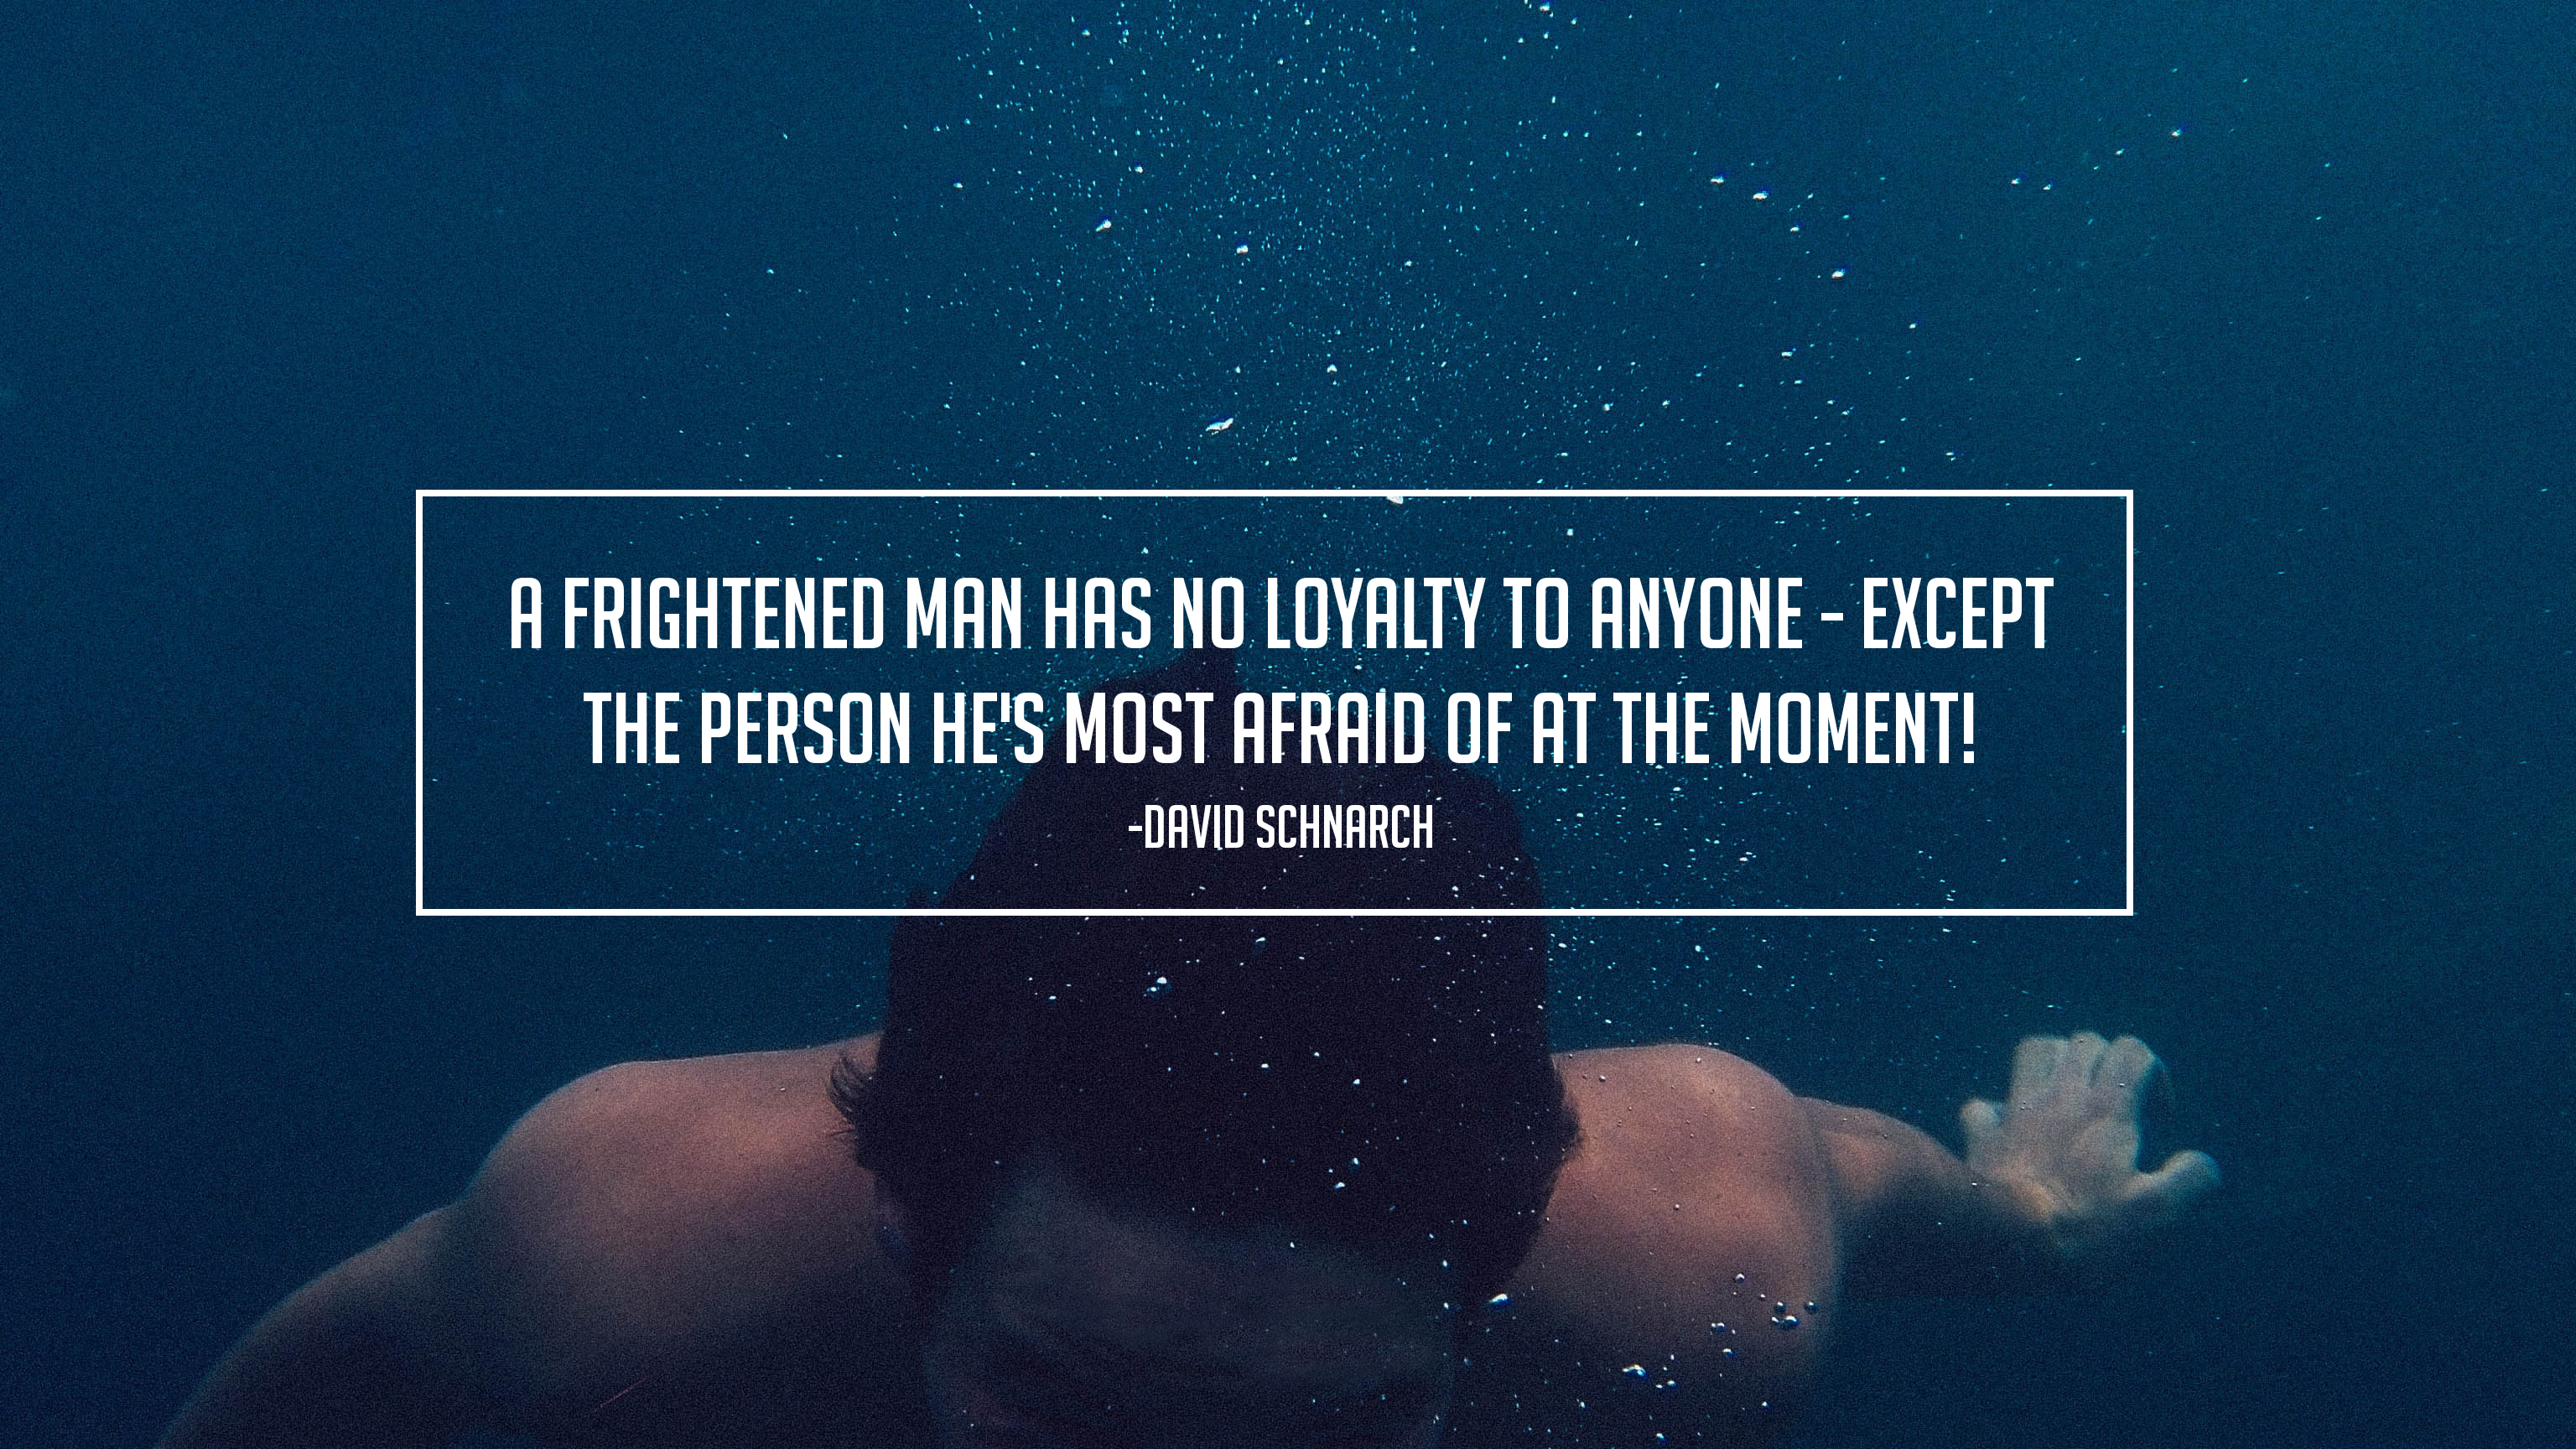 A frightened Man Has No Loyalty to Anyone Except the Person He's Most Afraid of at the Moment – David Schnarch